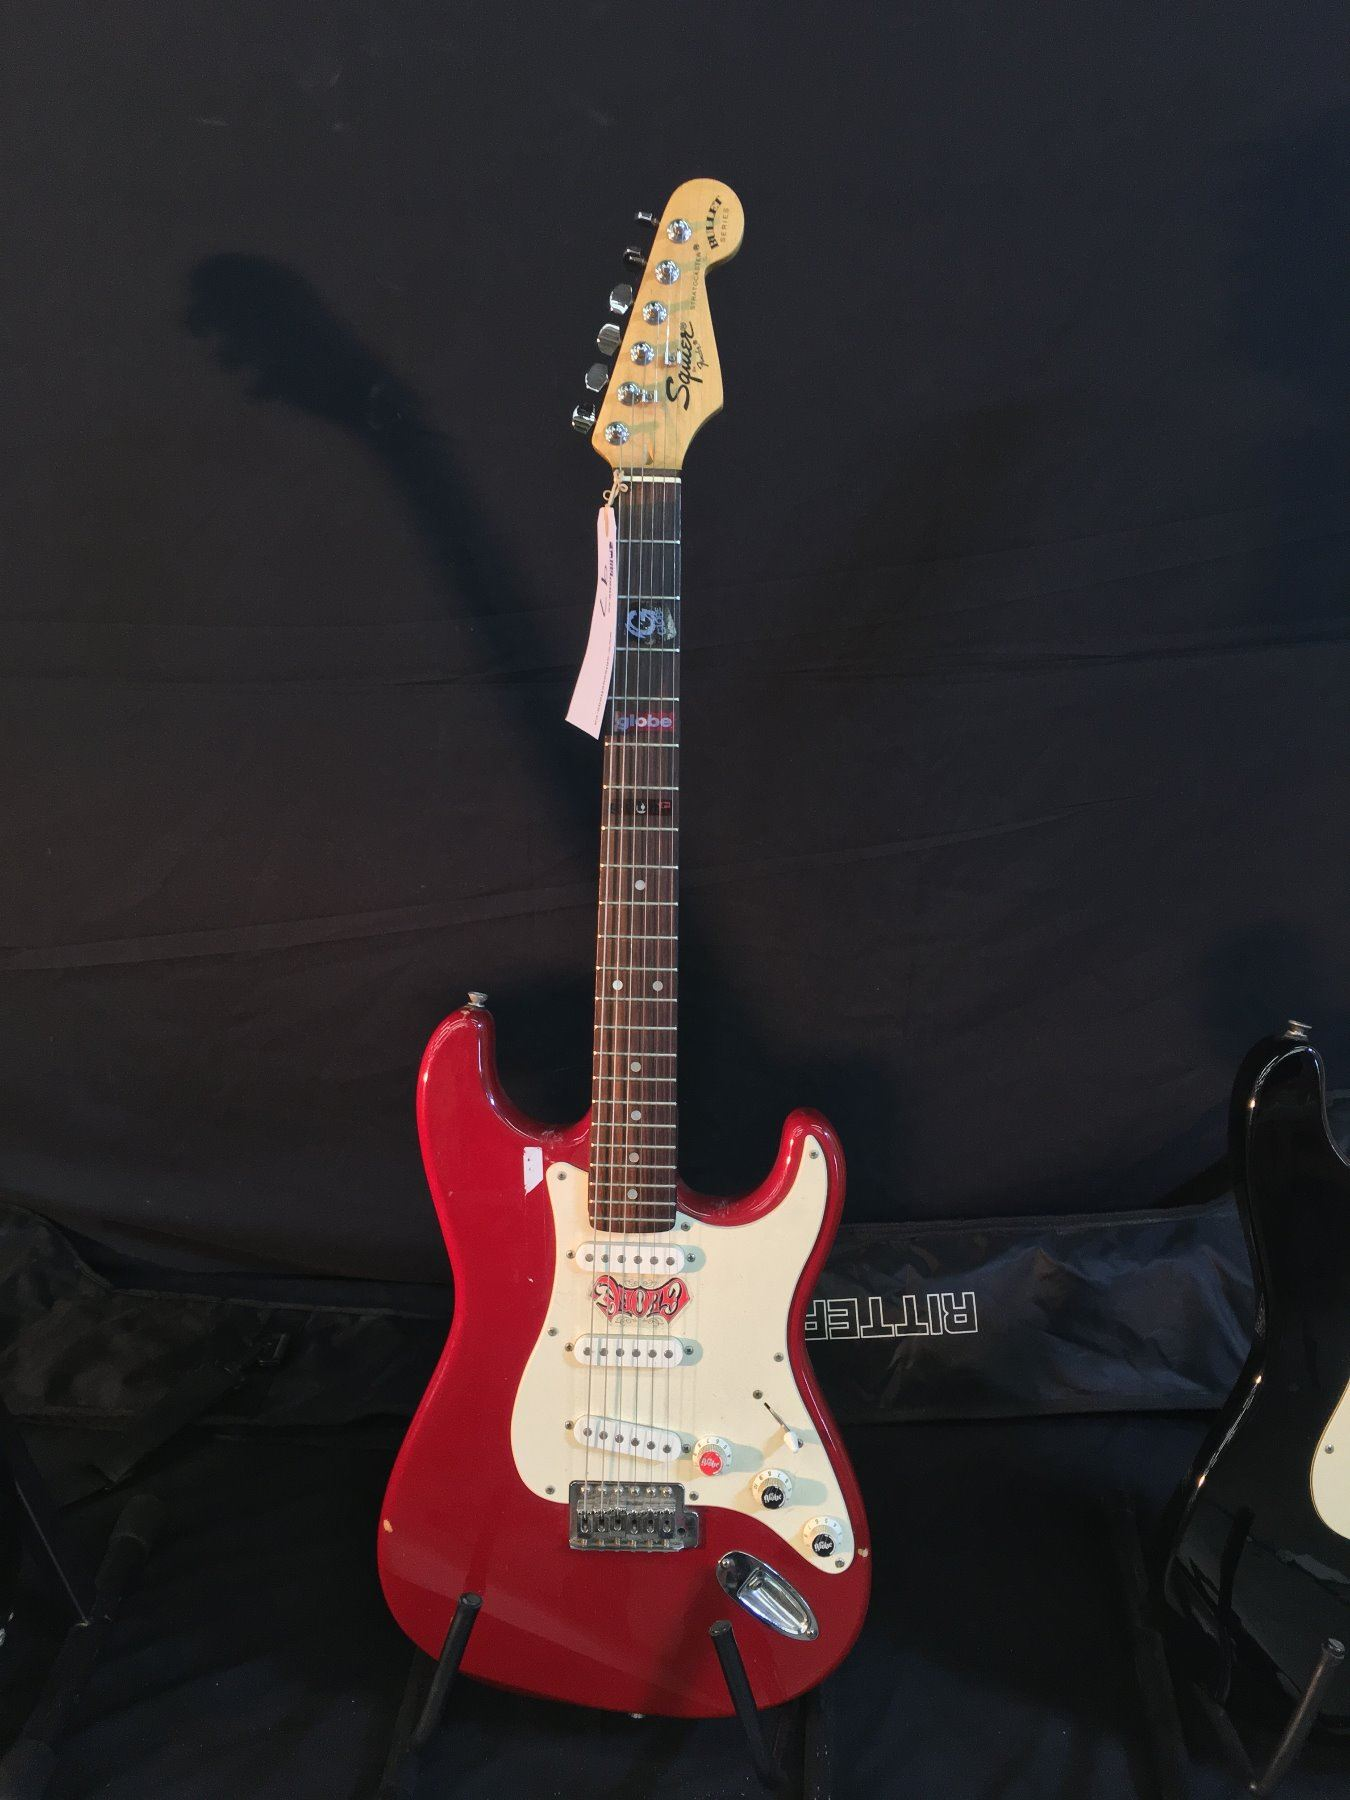 Comfortable Reznor Wiring Diagram Thick Bulldog Security Remote Starter With Keyless Entry Clean Alarm Wiring 3 Humbuckers Old Bulldog Security Keyless Entry BrownRemote Start Diagram 3 GUITARS: EPIPHONE STRAT STYLE ELECTRIC GUITAR WITH BRIDGE ..